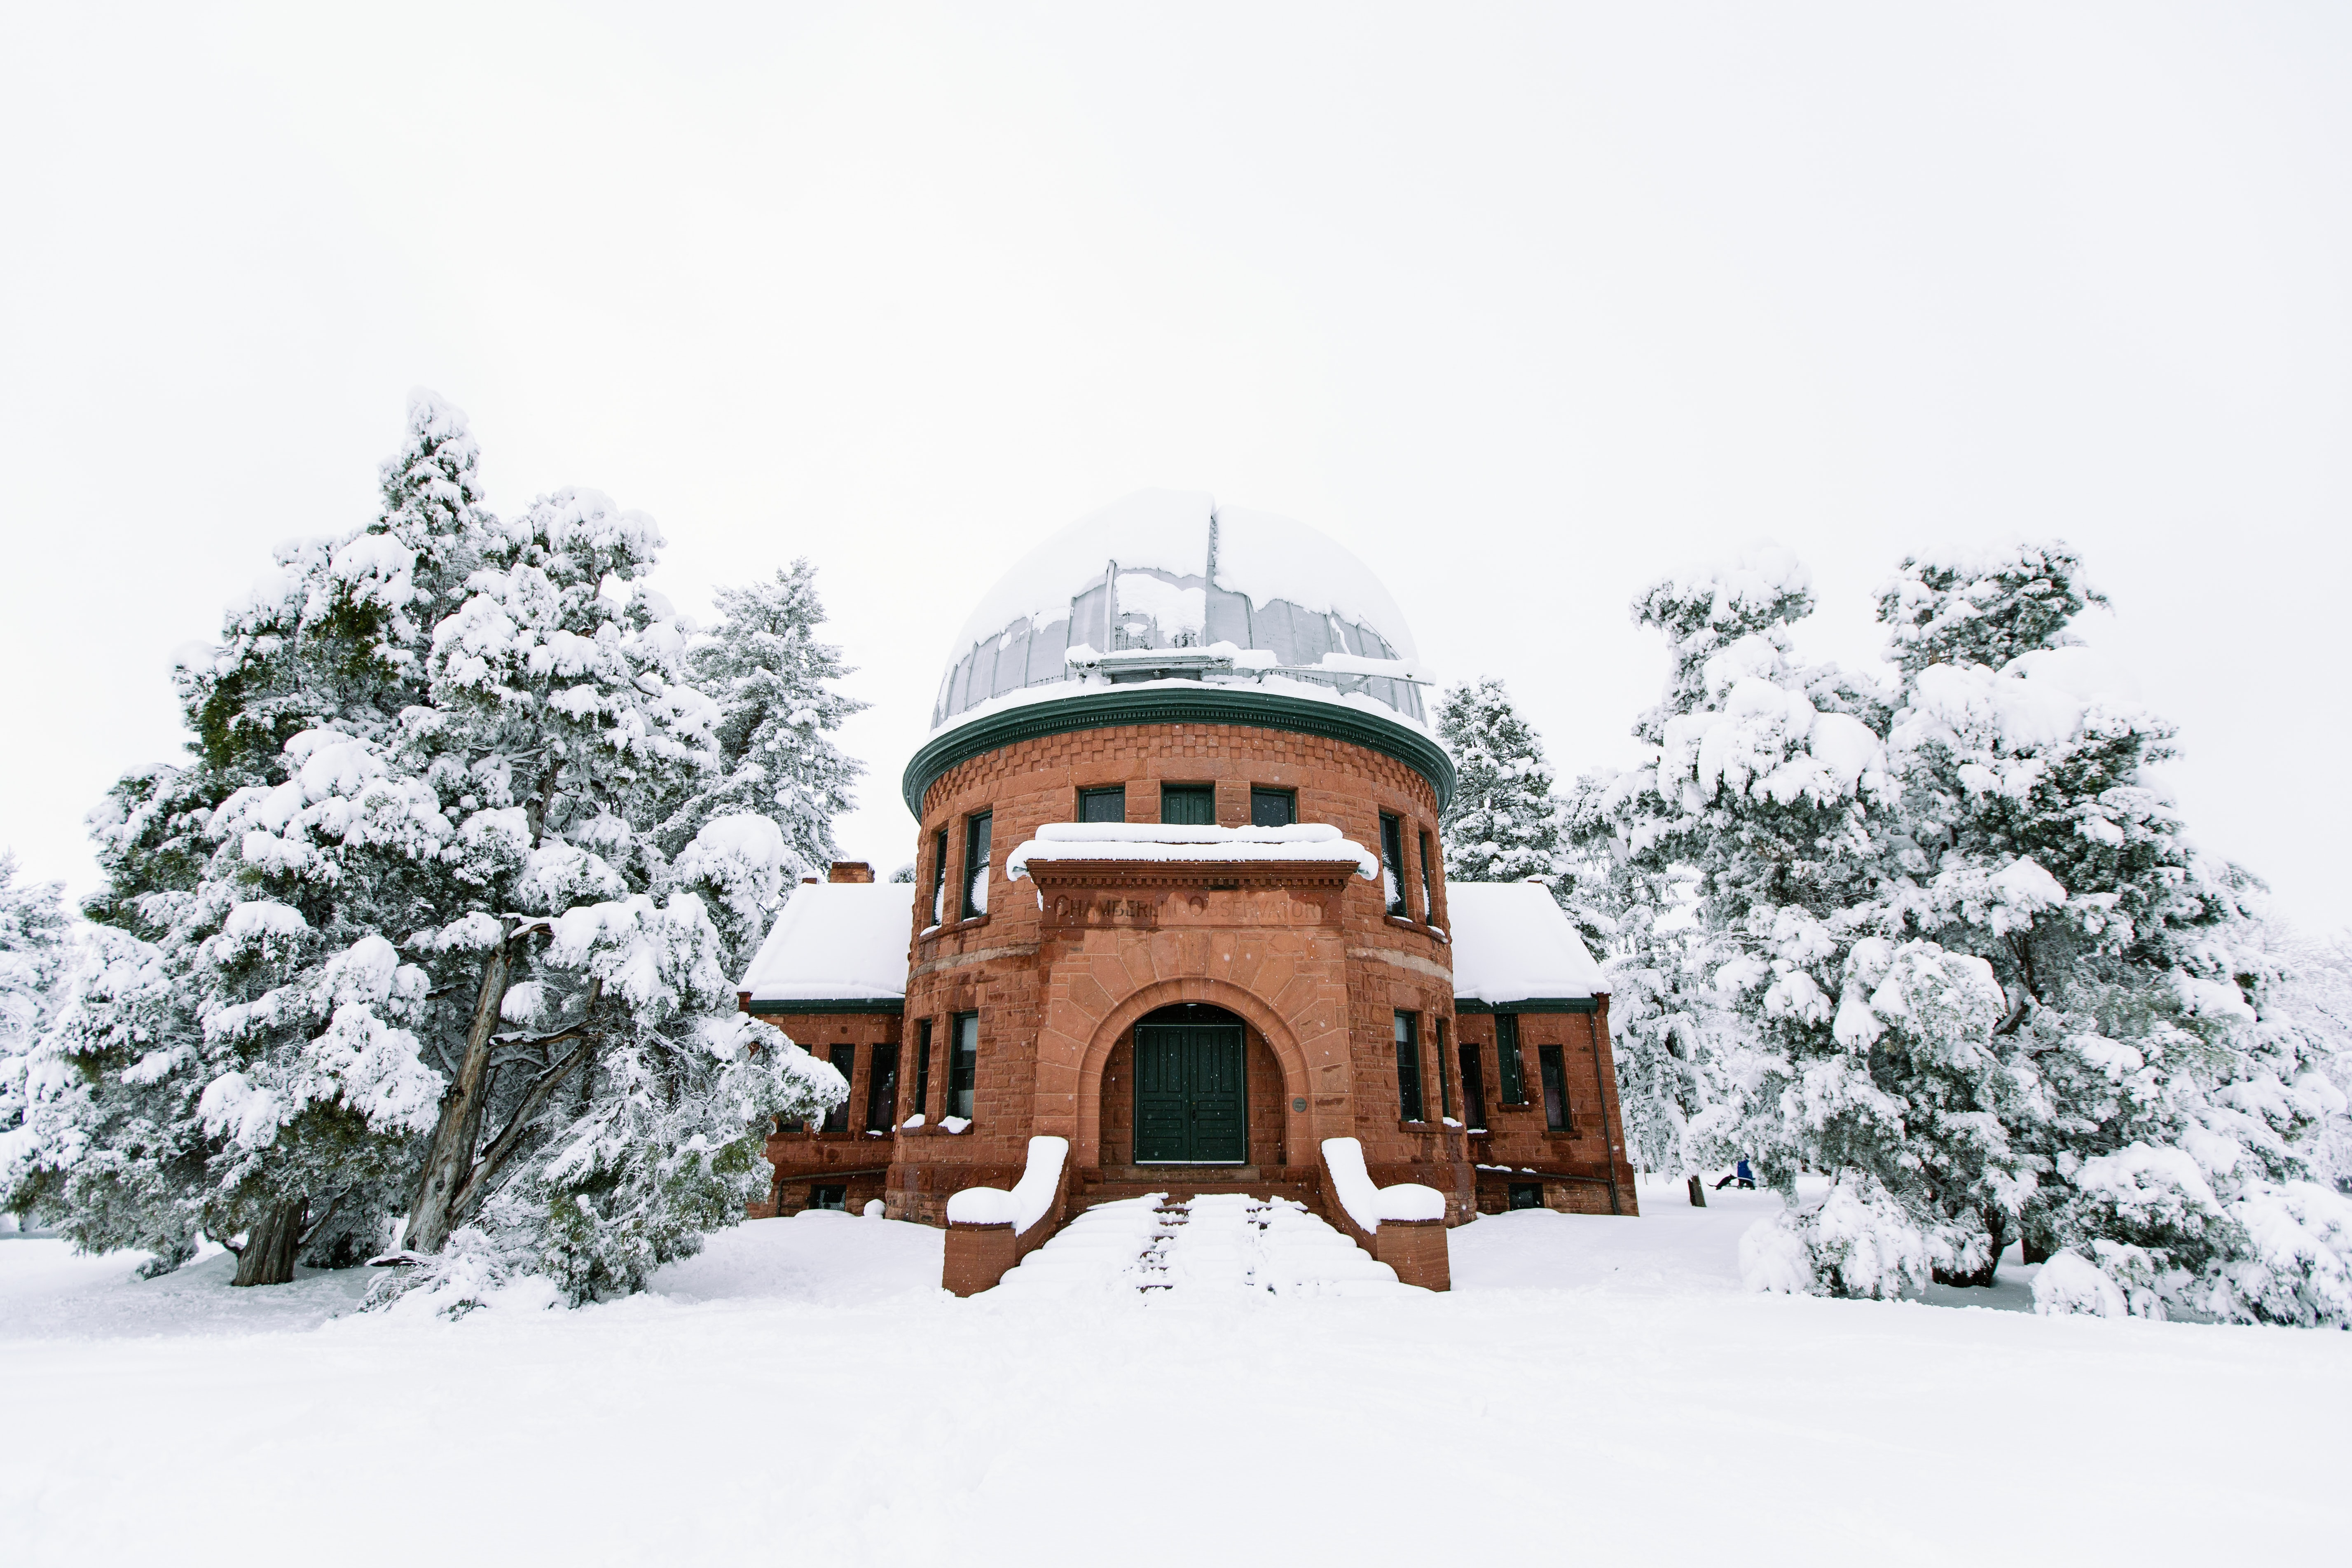 A building in the snow surrounded by wintery trees